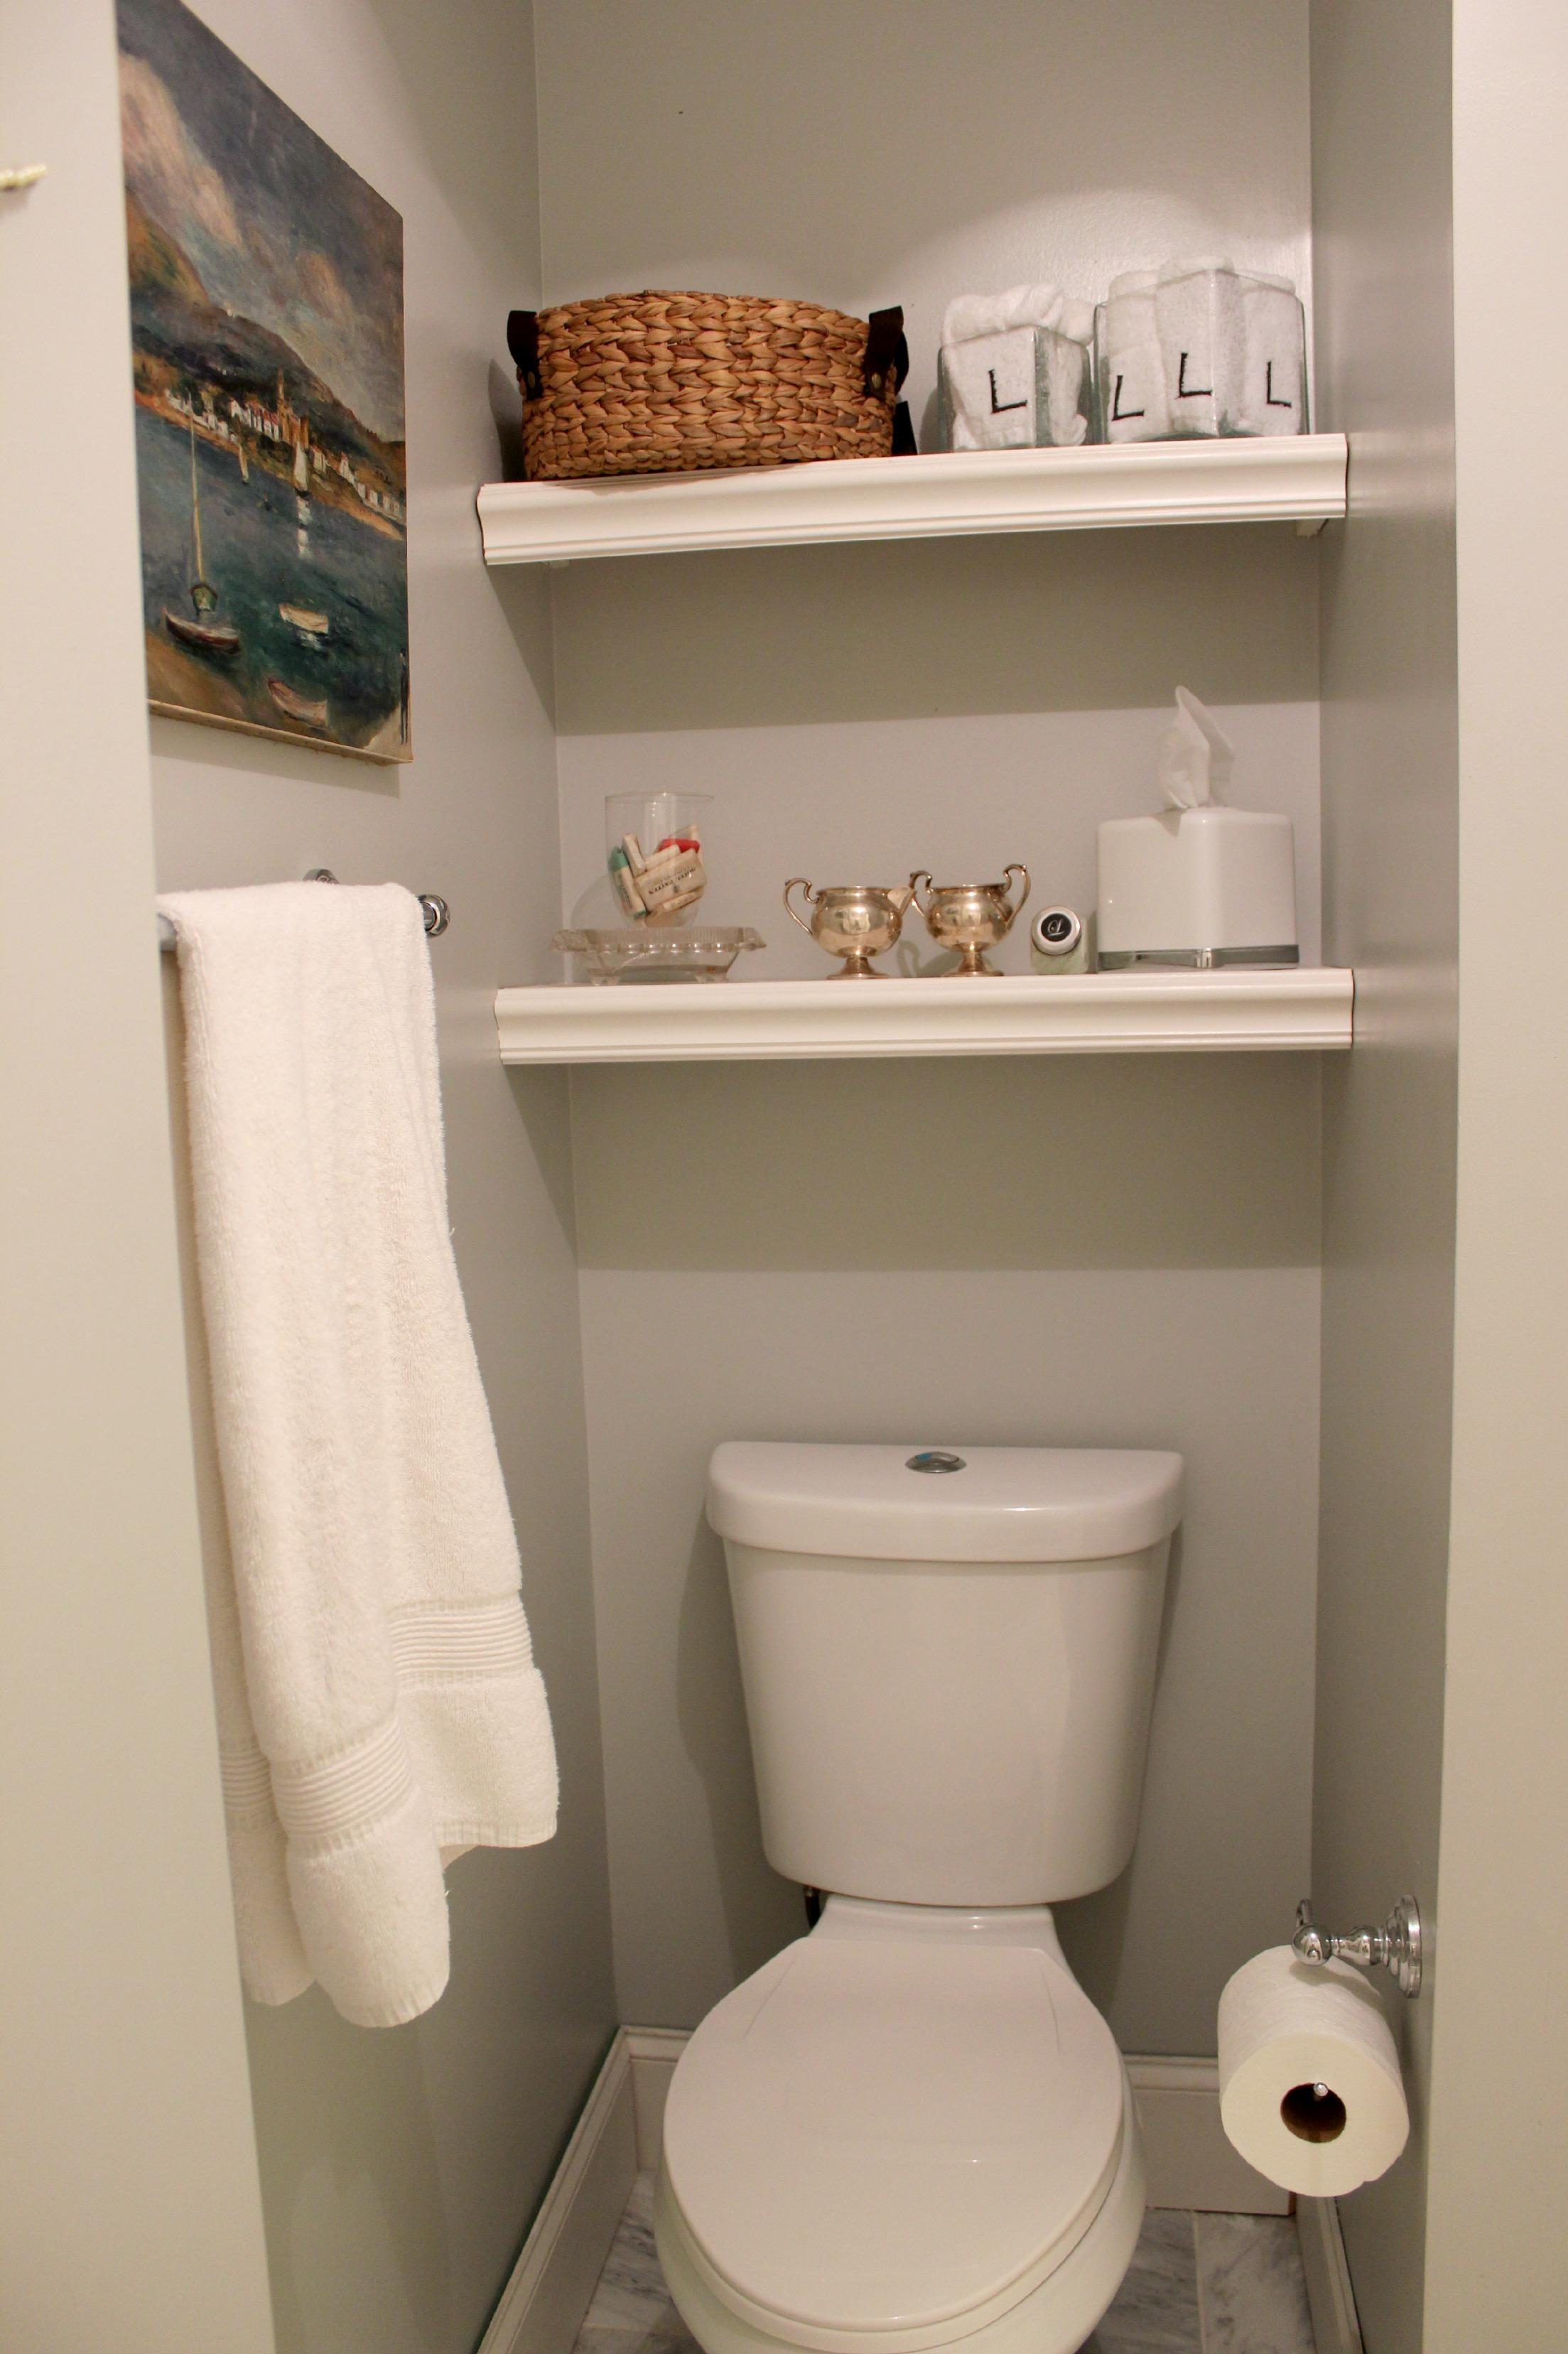 Bathroom Towel Small Toilet Shelf Pic Tissue Part 91